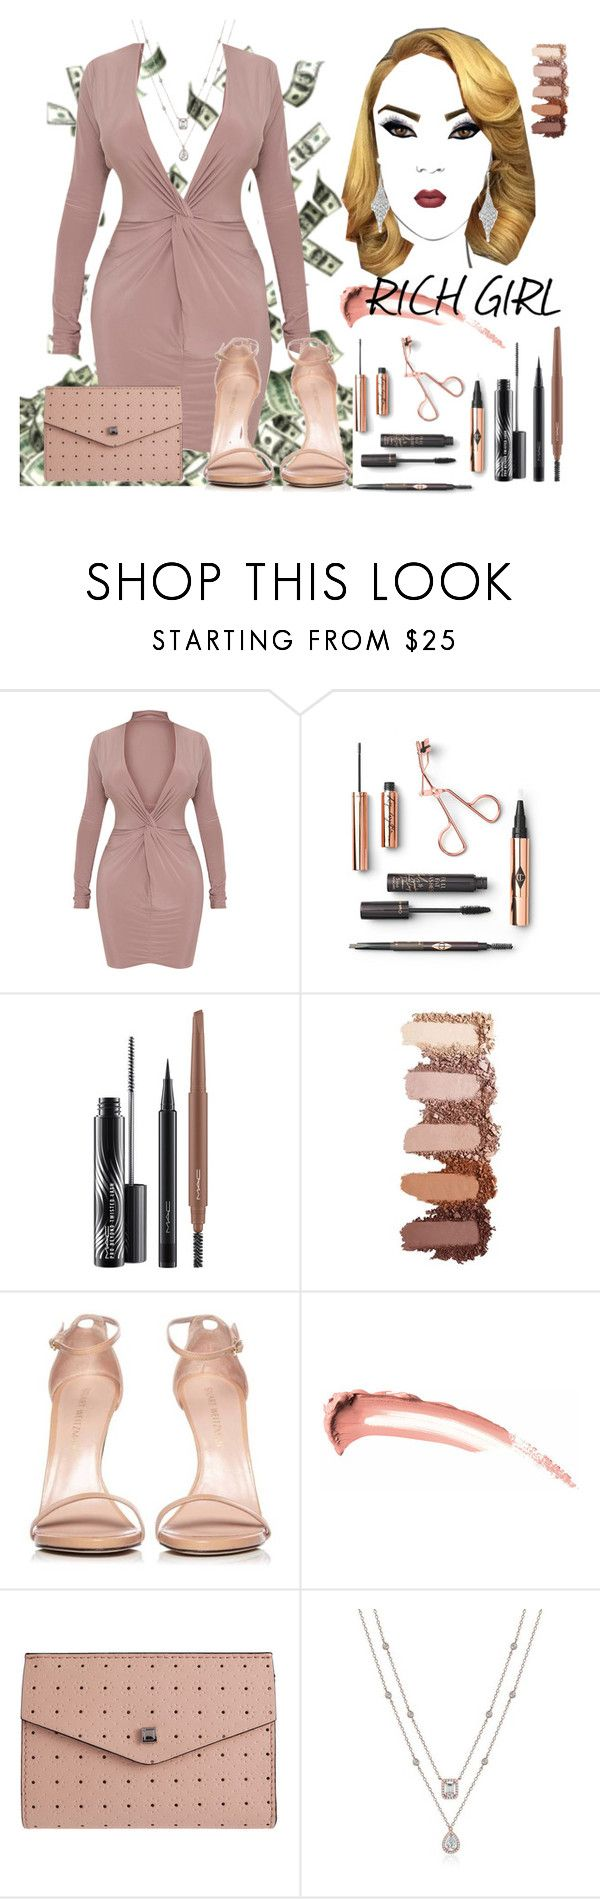 """""""Gwen Stefani- Rich Girl"""" by texasradiance ❤ liked on Polyvore featuring MAC Cosmetics, Stuart Weitzman, Lodis and Allurez"""